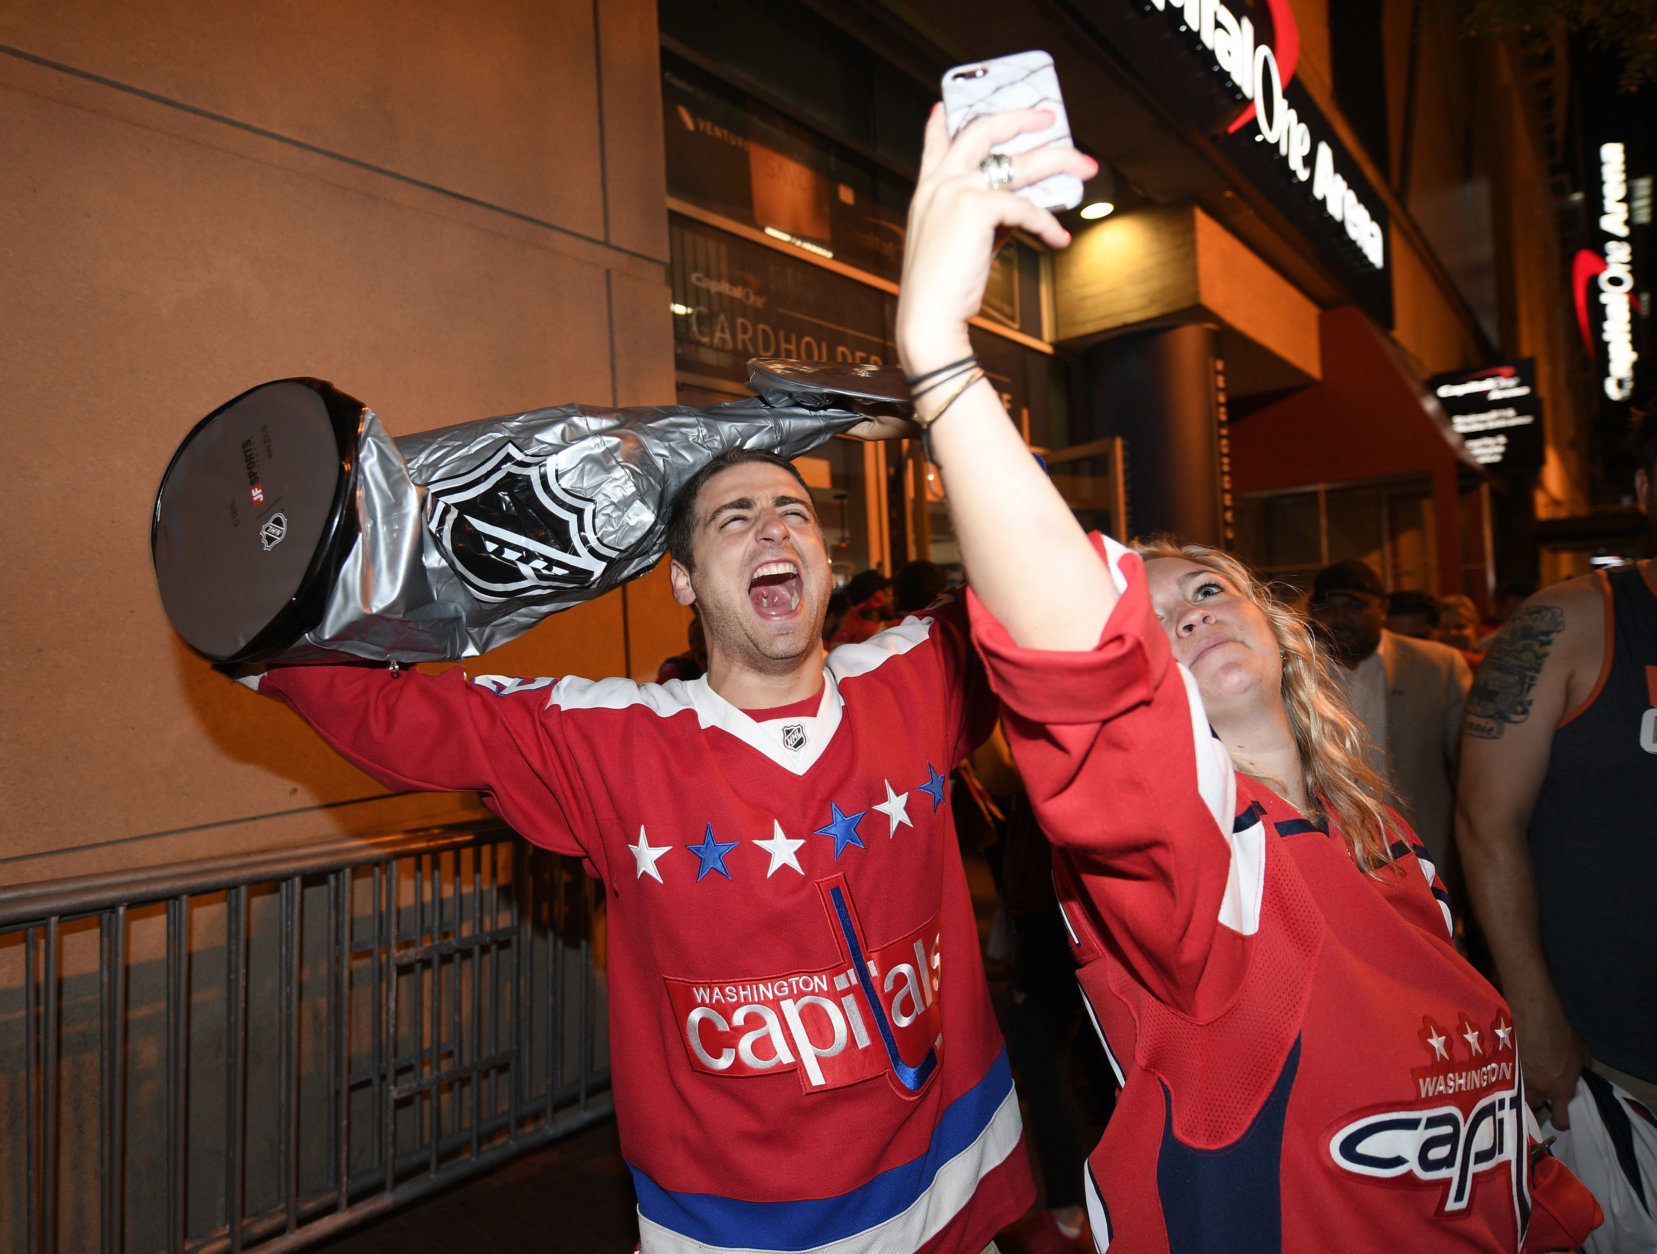 Washington Capitals fans celebrate in the streets outside Capital One Arena in Washington after Game 5 of the NHL hockey Stanley Cup Final between the Washington Capitals and the Vegas Golden Knights in Las Vegas, Thursday, June 7, 2018. The Capitals won the Stanley Cup. (AP Photo/Nick Wass)